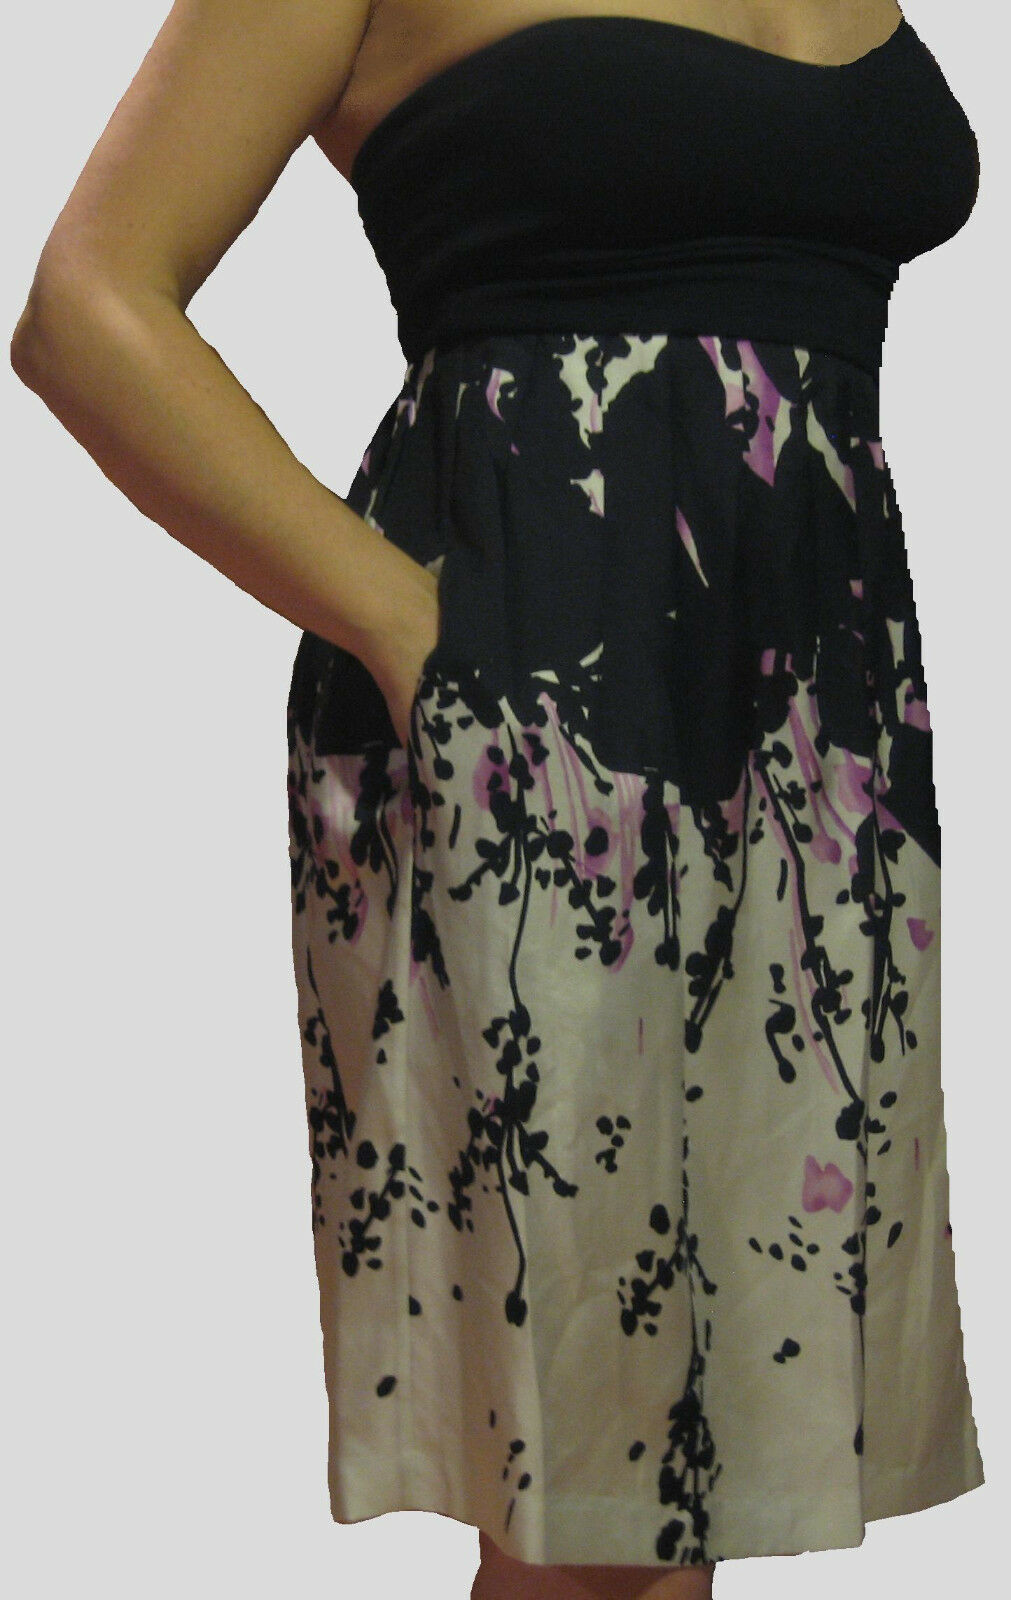 NWT Susana Monaco Floral Print Silk Dress